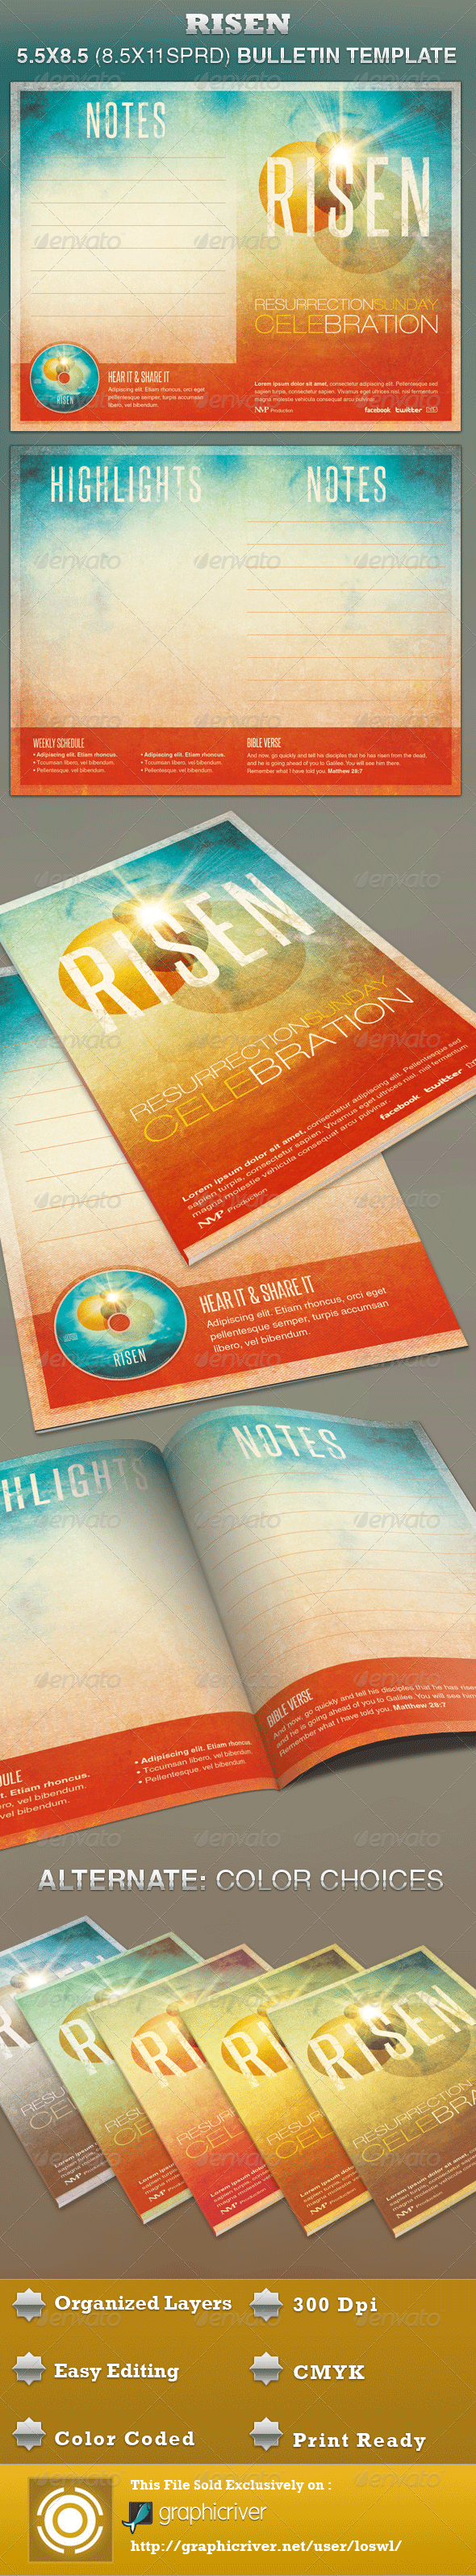 Risen Church Bulletin Template  Fonts Artworks And Church